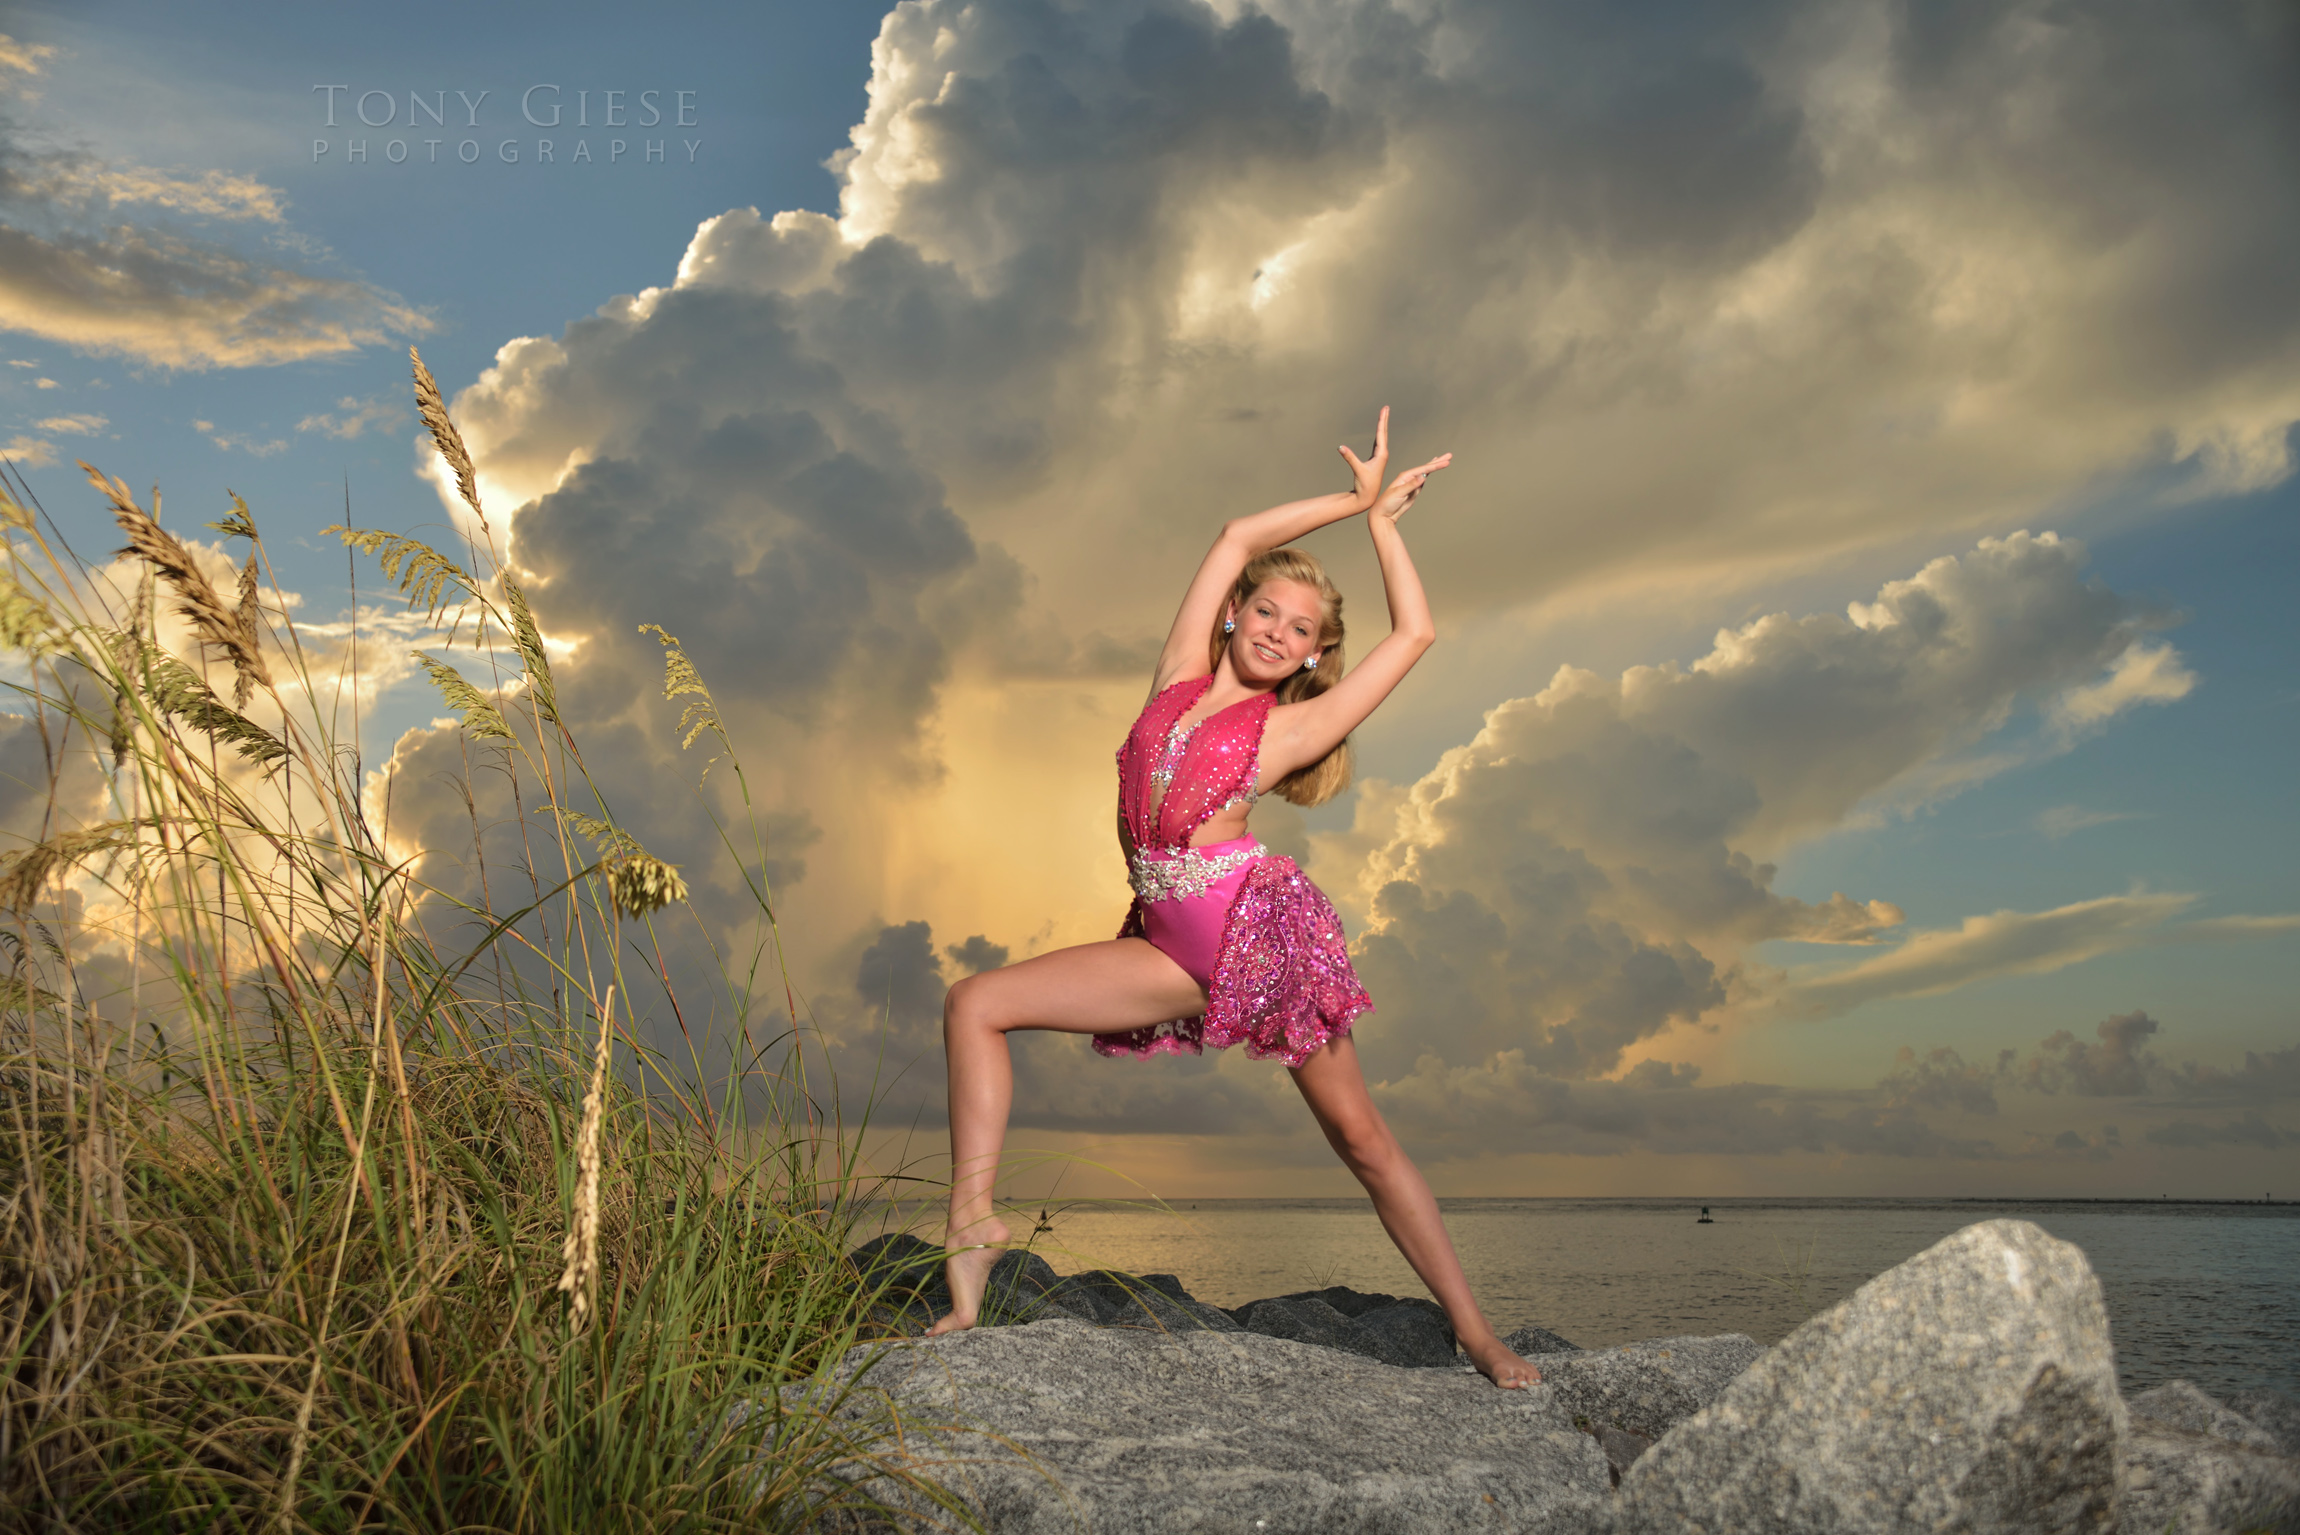 Taya's dance pose on the rock jetties, Ponce Inlet, Florida. Photograph by Tony Giese Photography